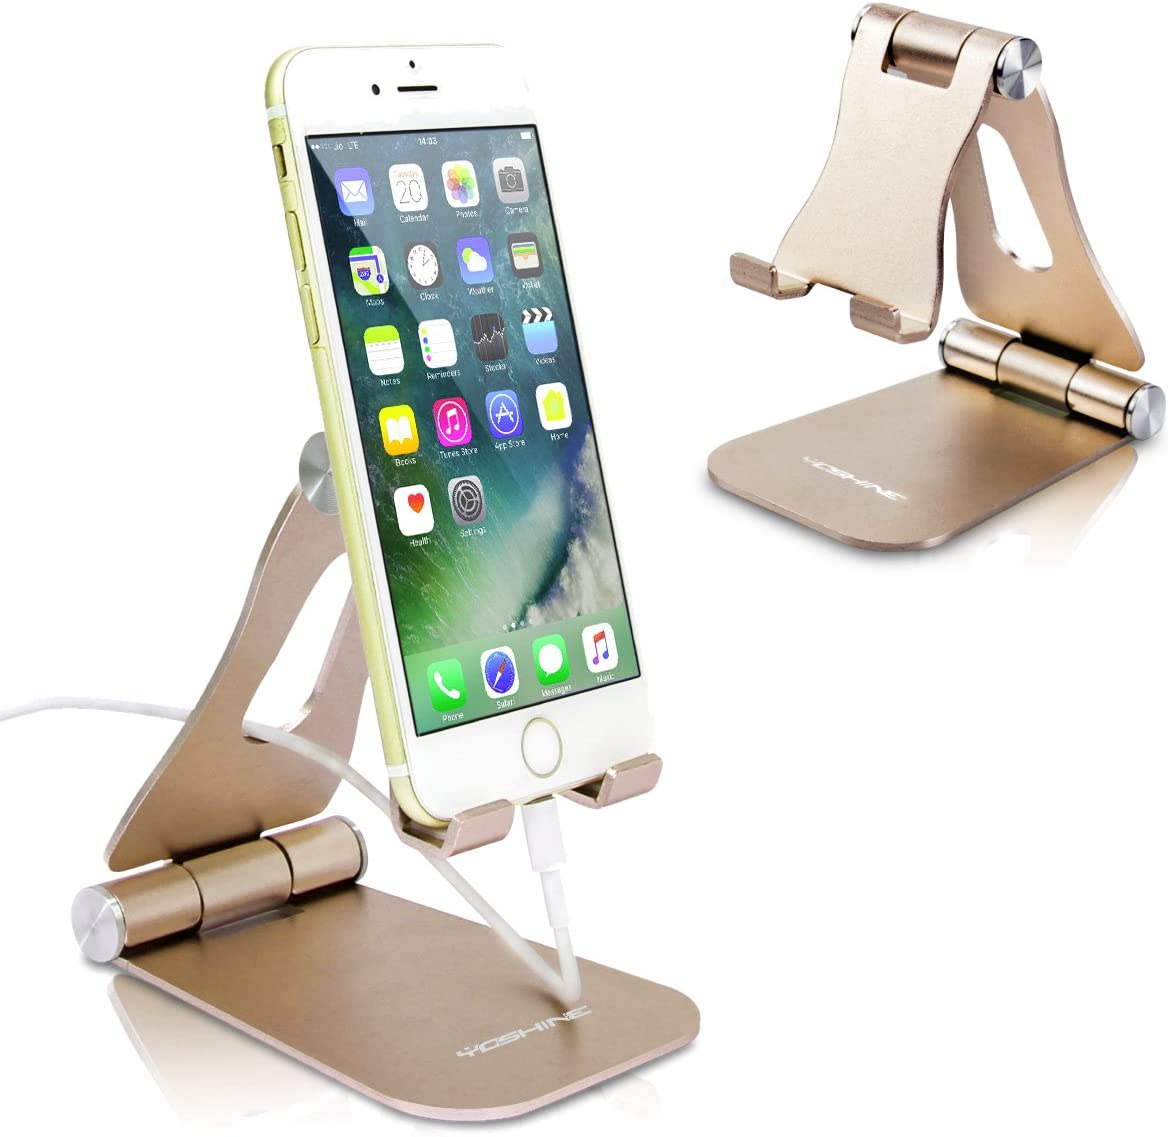 Cell Phone Stand Foldable YoShine Aluminum Phone Holder Phone Stand and Cable Organizer for Charging Desktop Cell Phone Holder Adjustable Phone Stand Dock for iPhone iPad/Mini Samsung Tablets - Gold